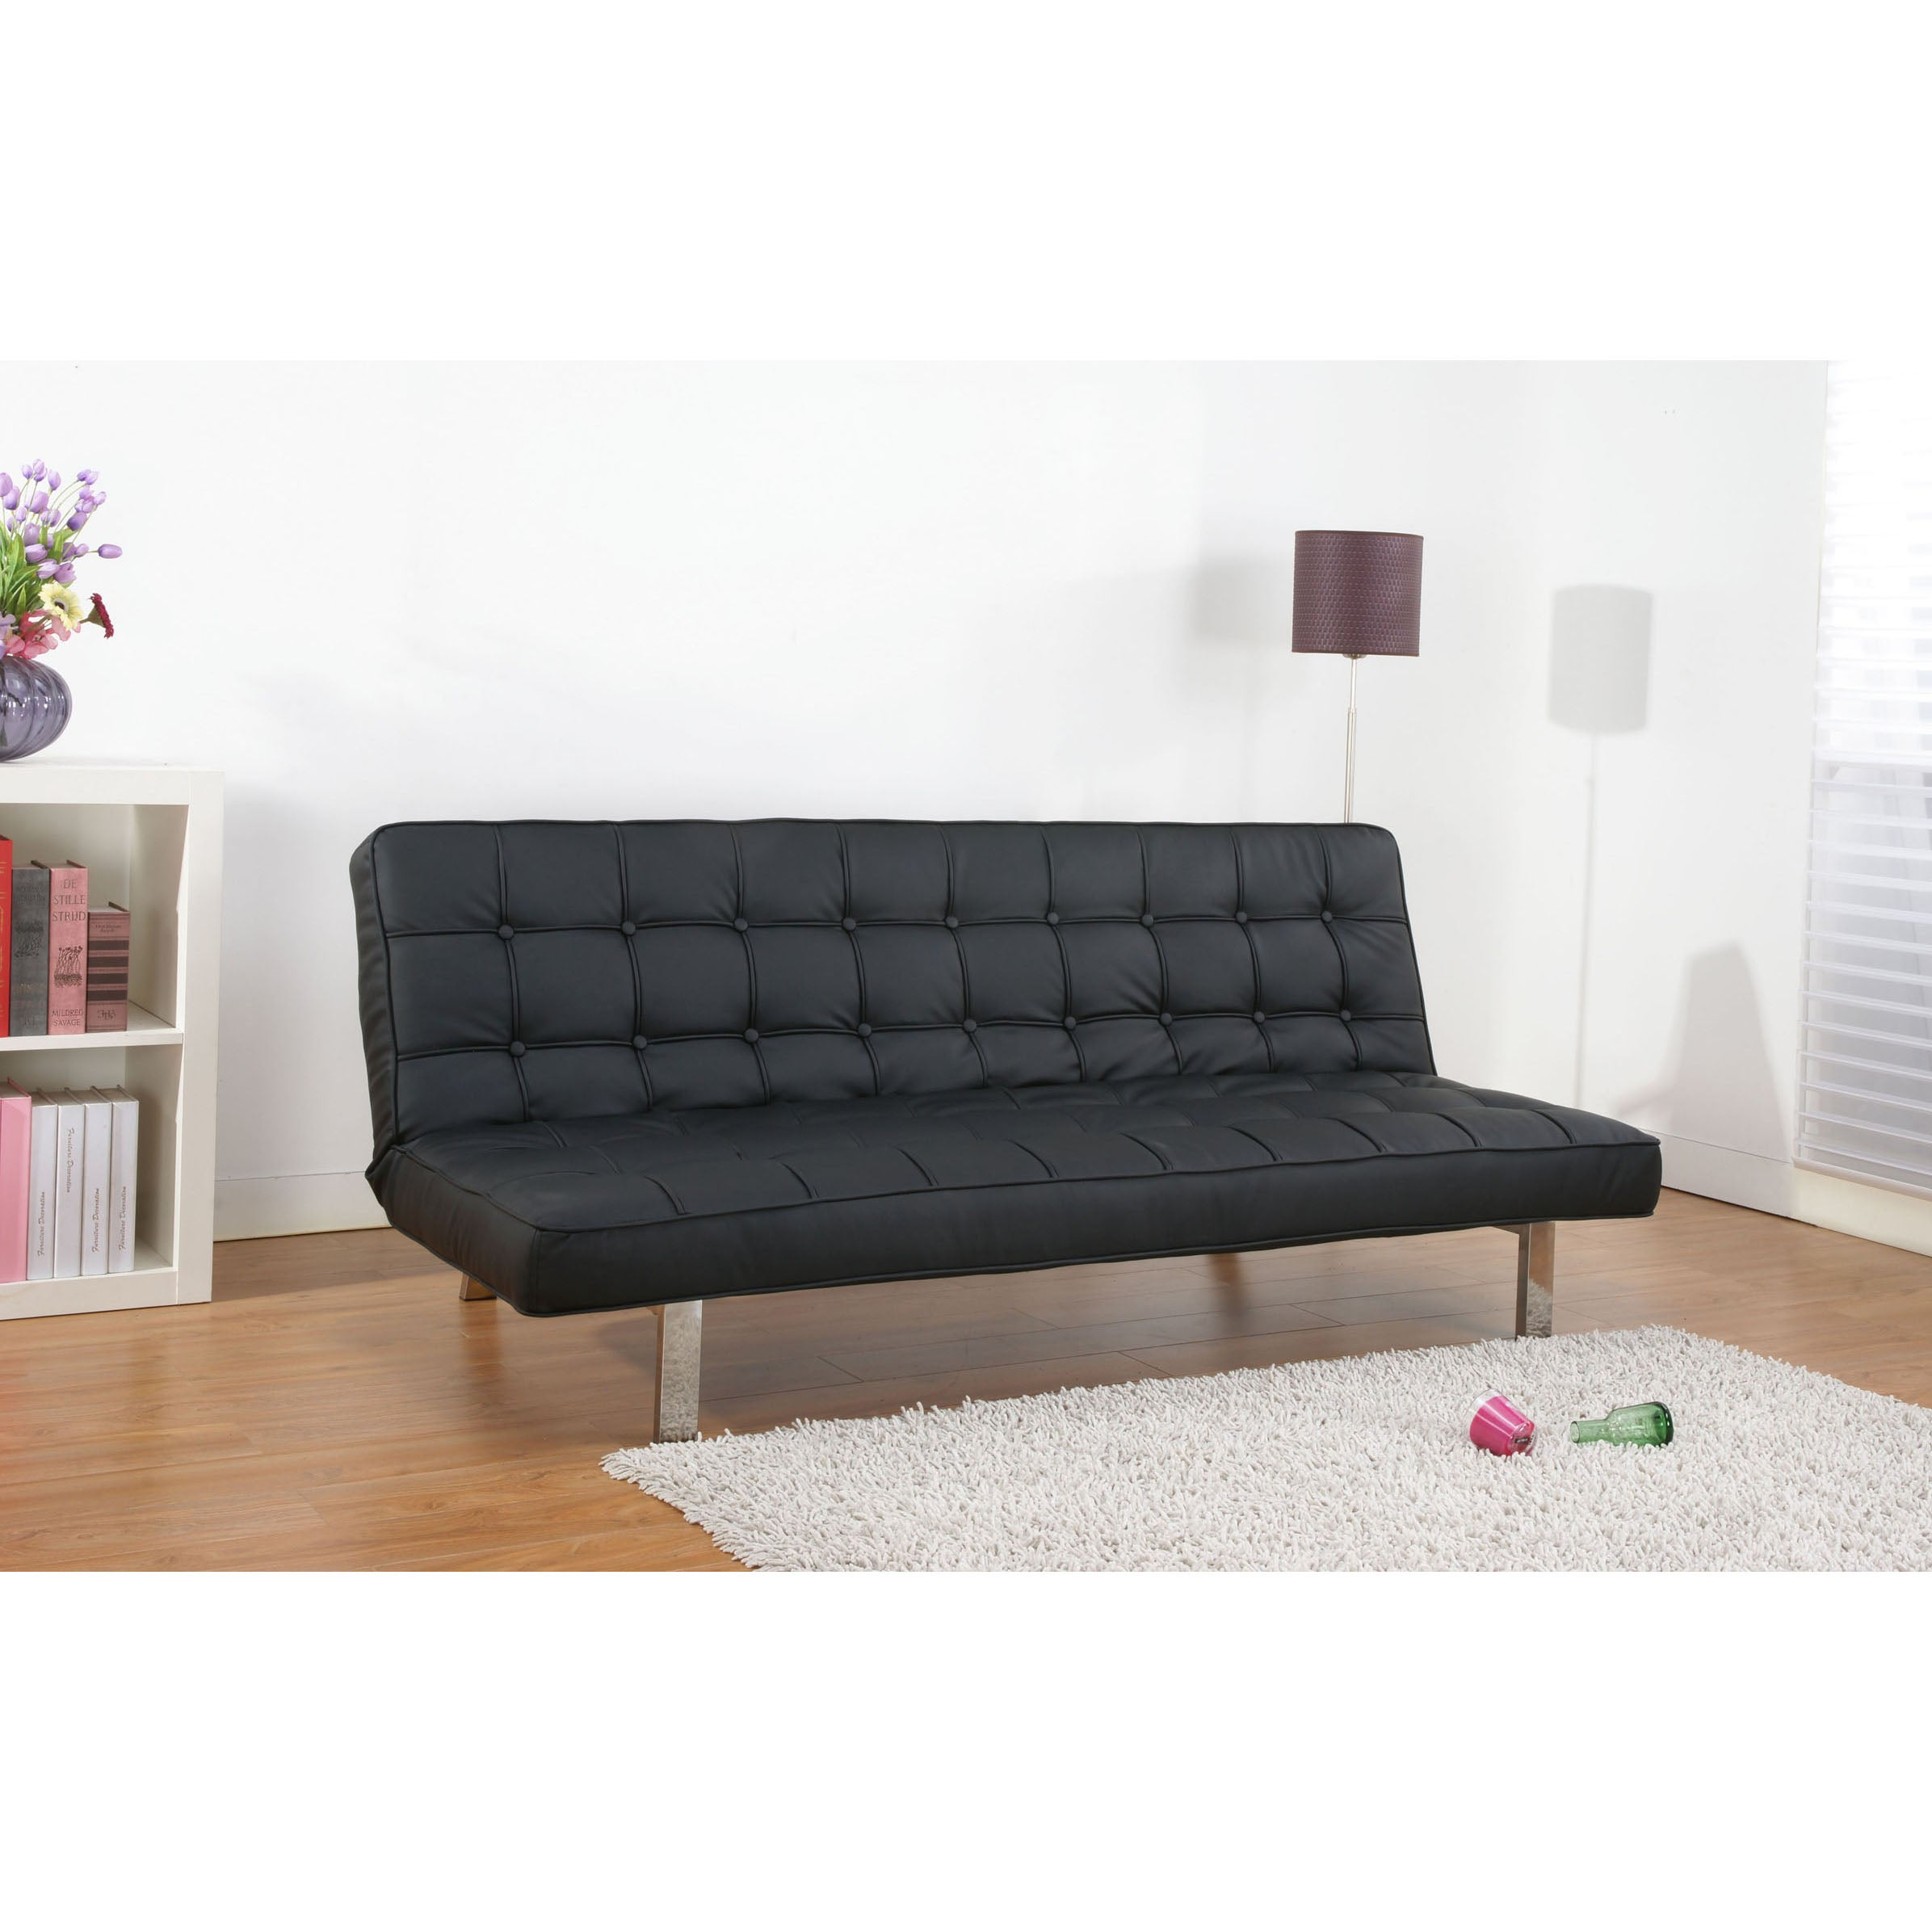 vegas black futon sofa bed overstock shopping great ForSofa Bed Overstock